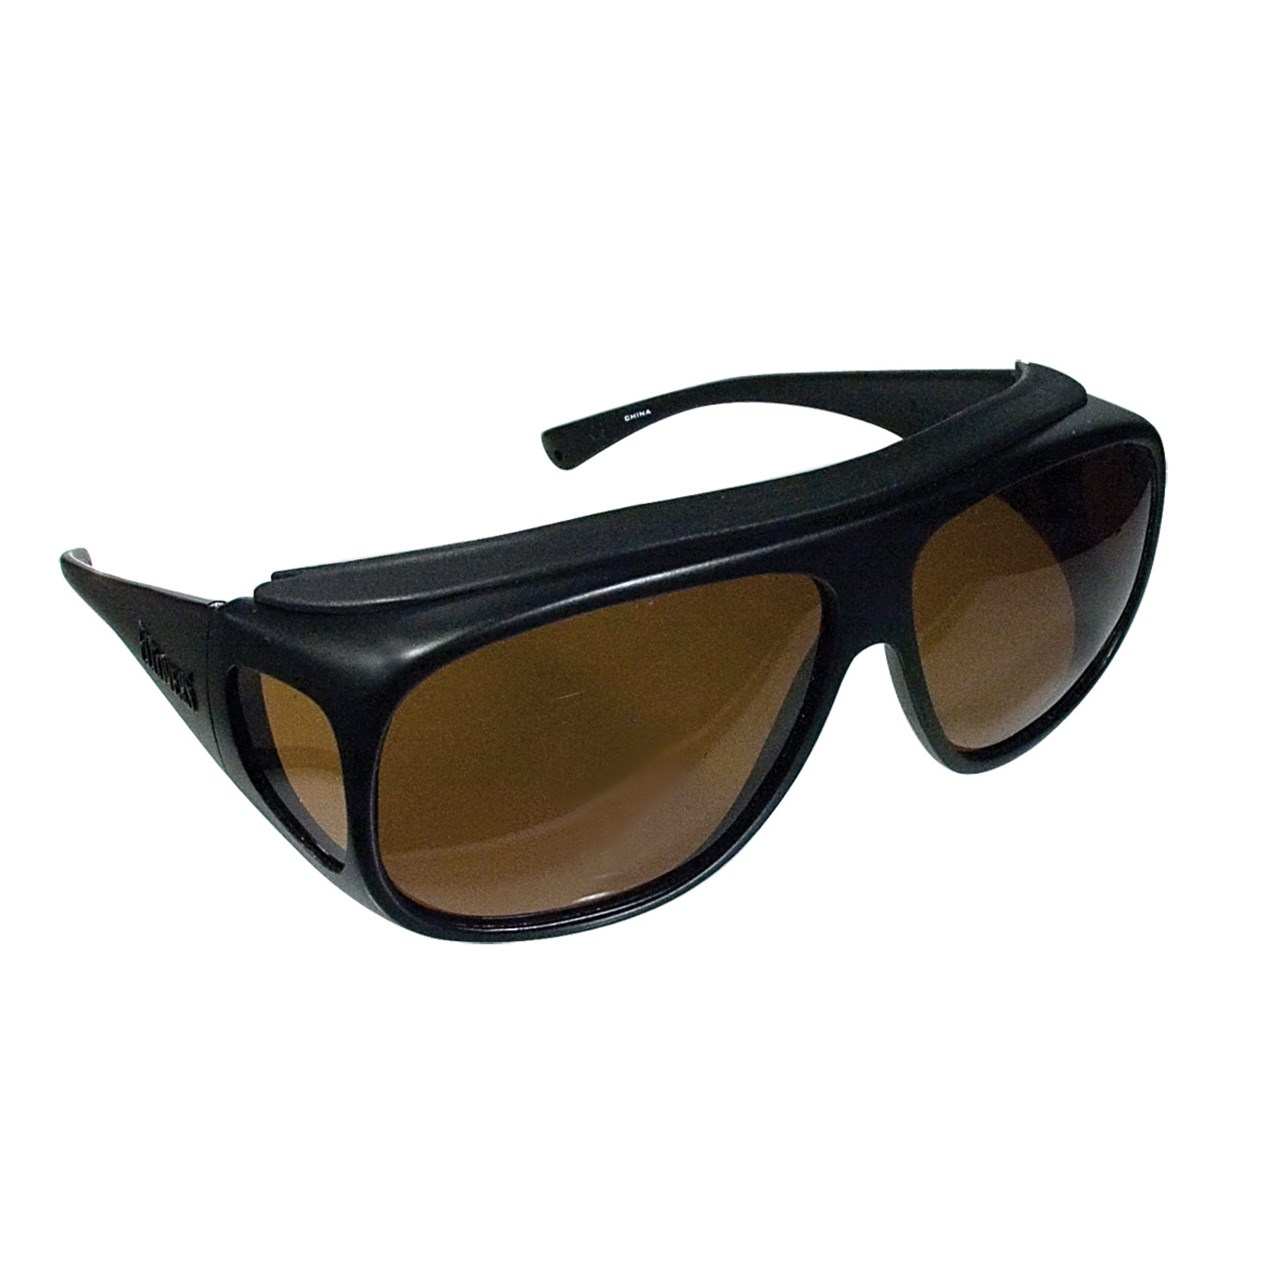 1c87f1a8870 Fitovers Sunglasses - Aviator Black-Amber - Large